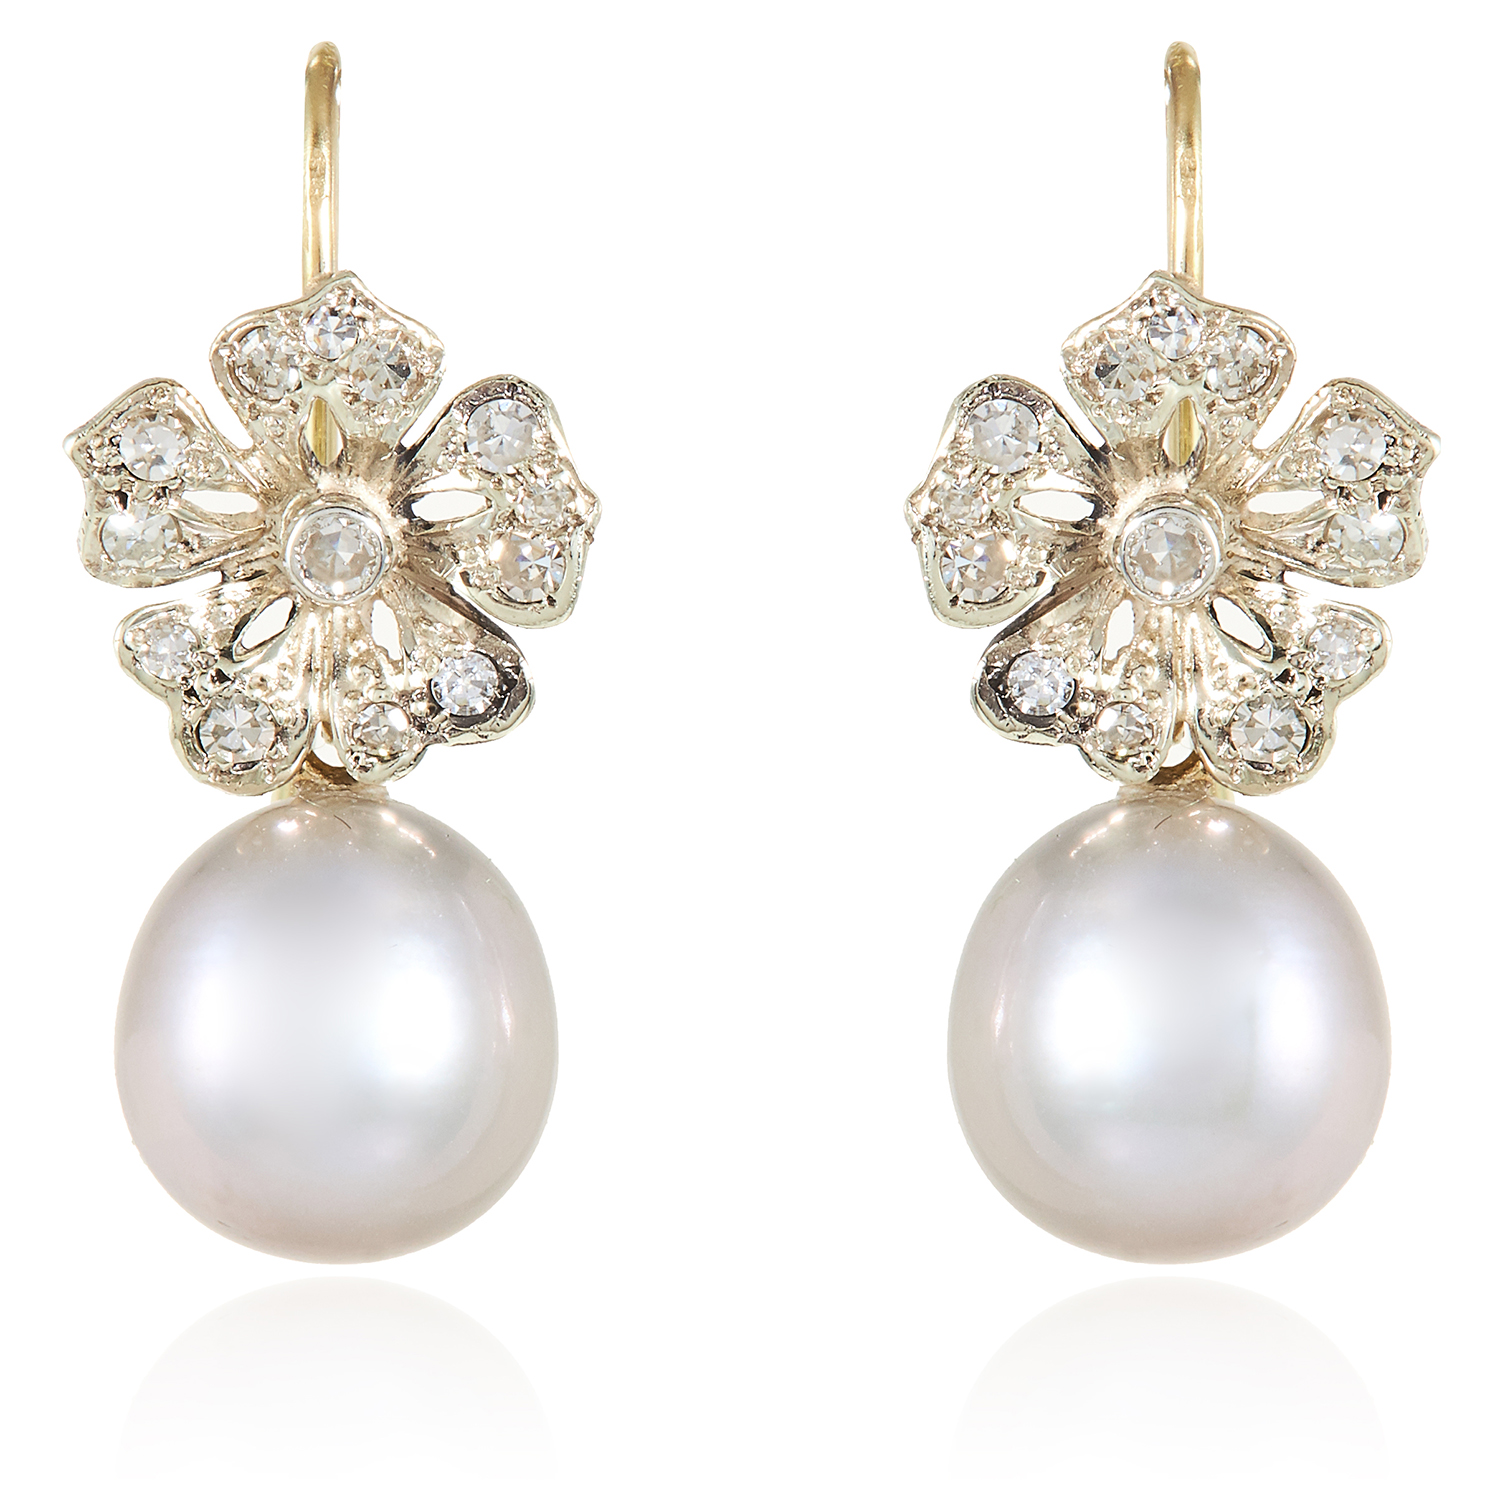 Los 32 - A PAIR OF ANTIQUE PEARL AND DIAMOND EARRINGS in yellow gold and platinum, each suspending a pearl